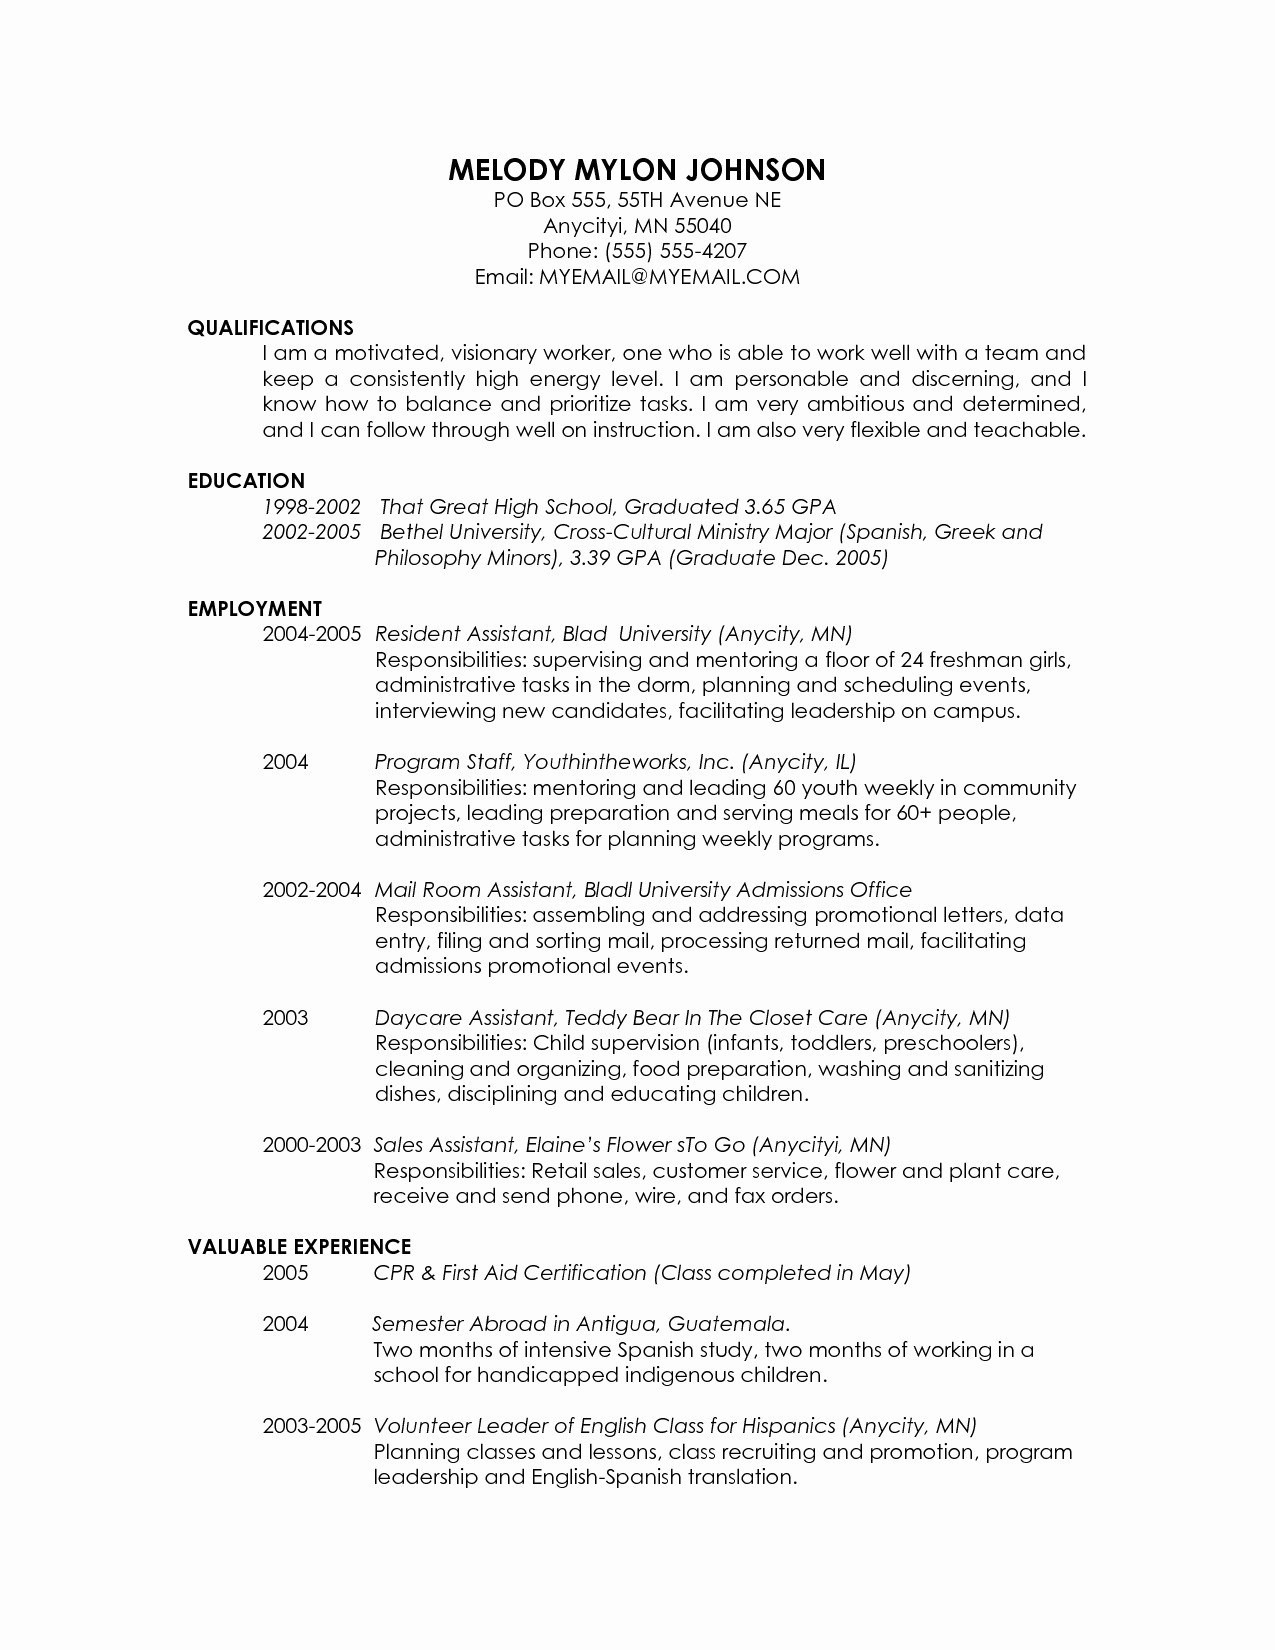 Food Prep Resume - Food Prep Resume Unique Unique Resume Tutor Luxury Writing Your